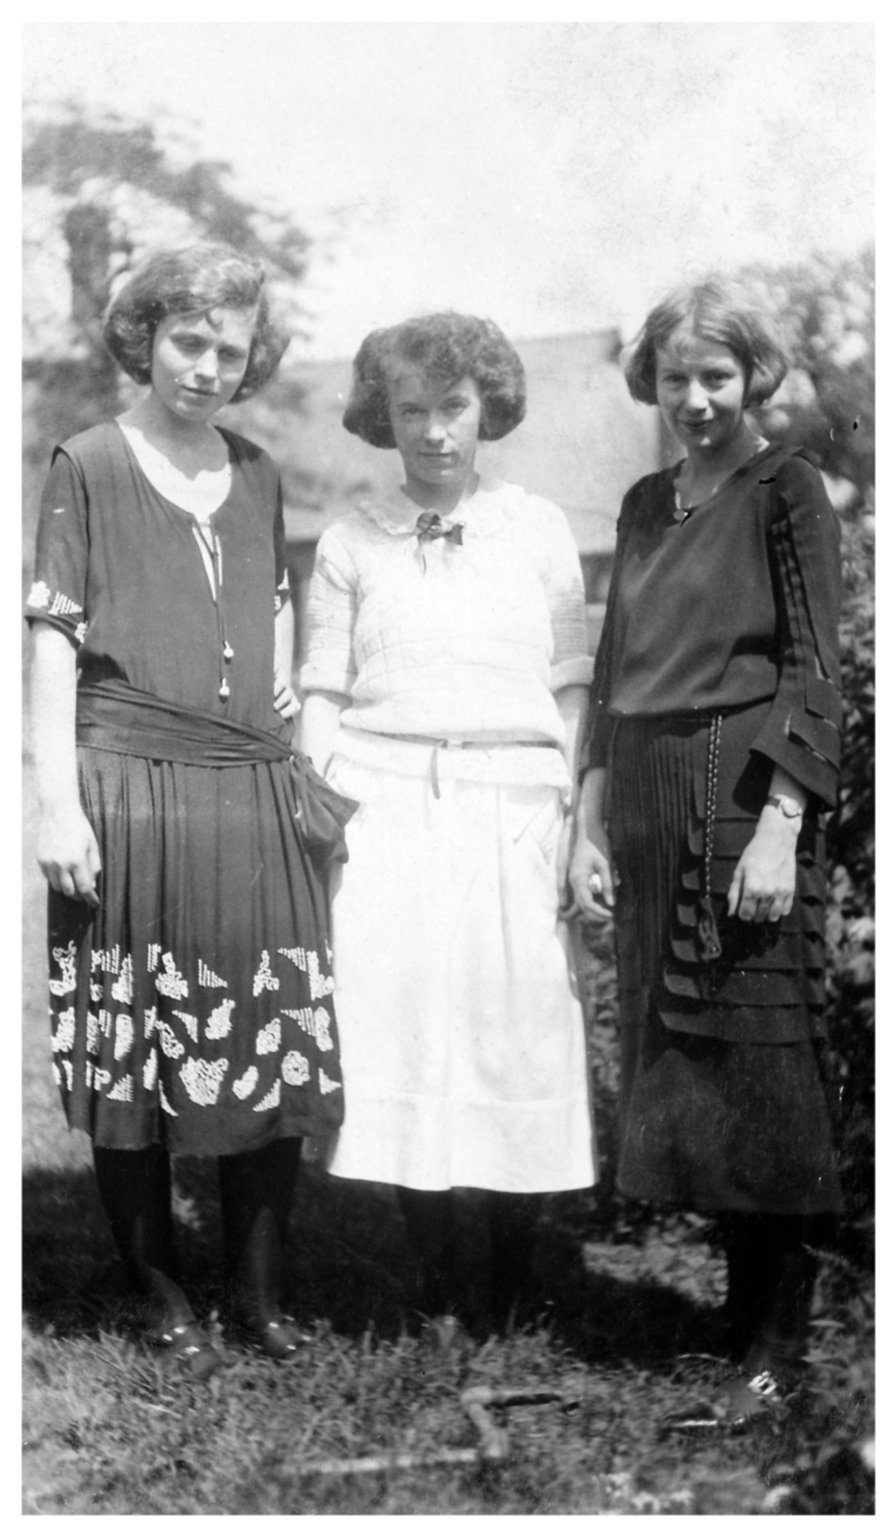 Elizabeth, Hattie, and Sara